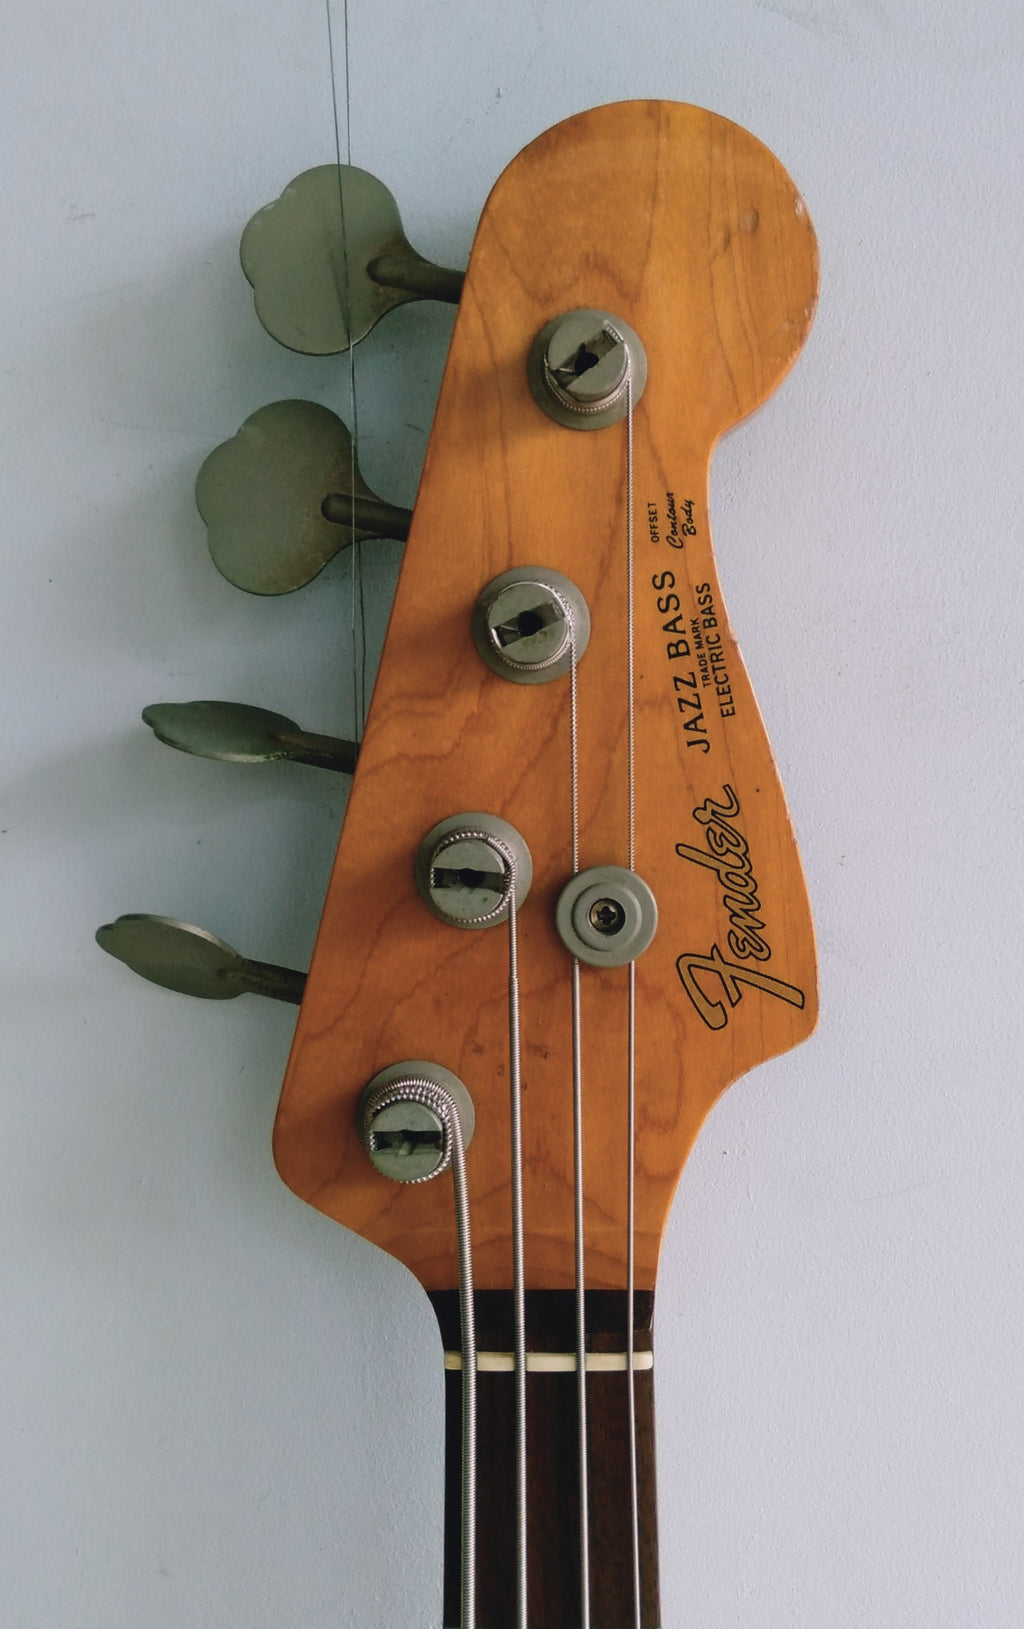 Fender Jazz bass 1994